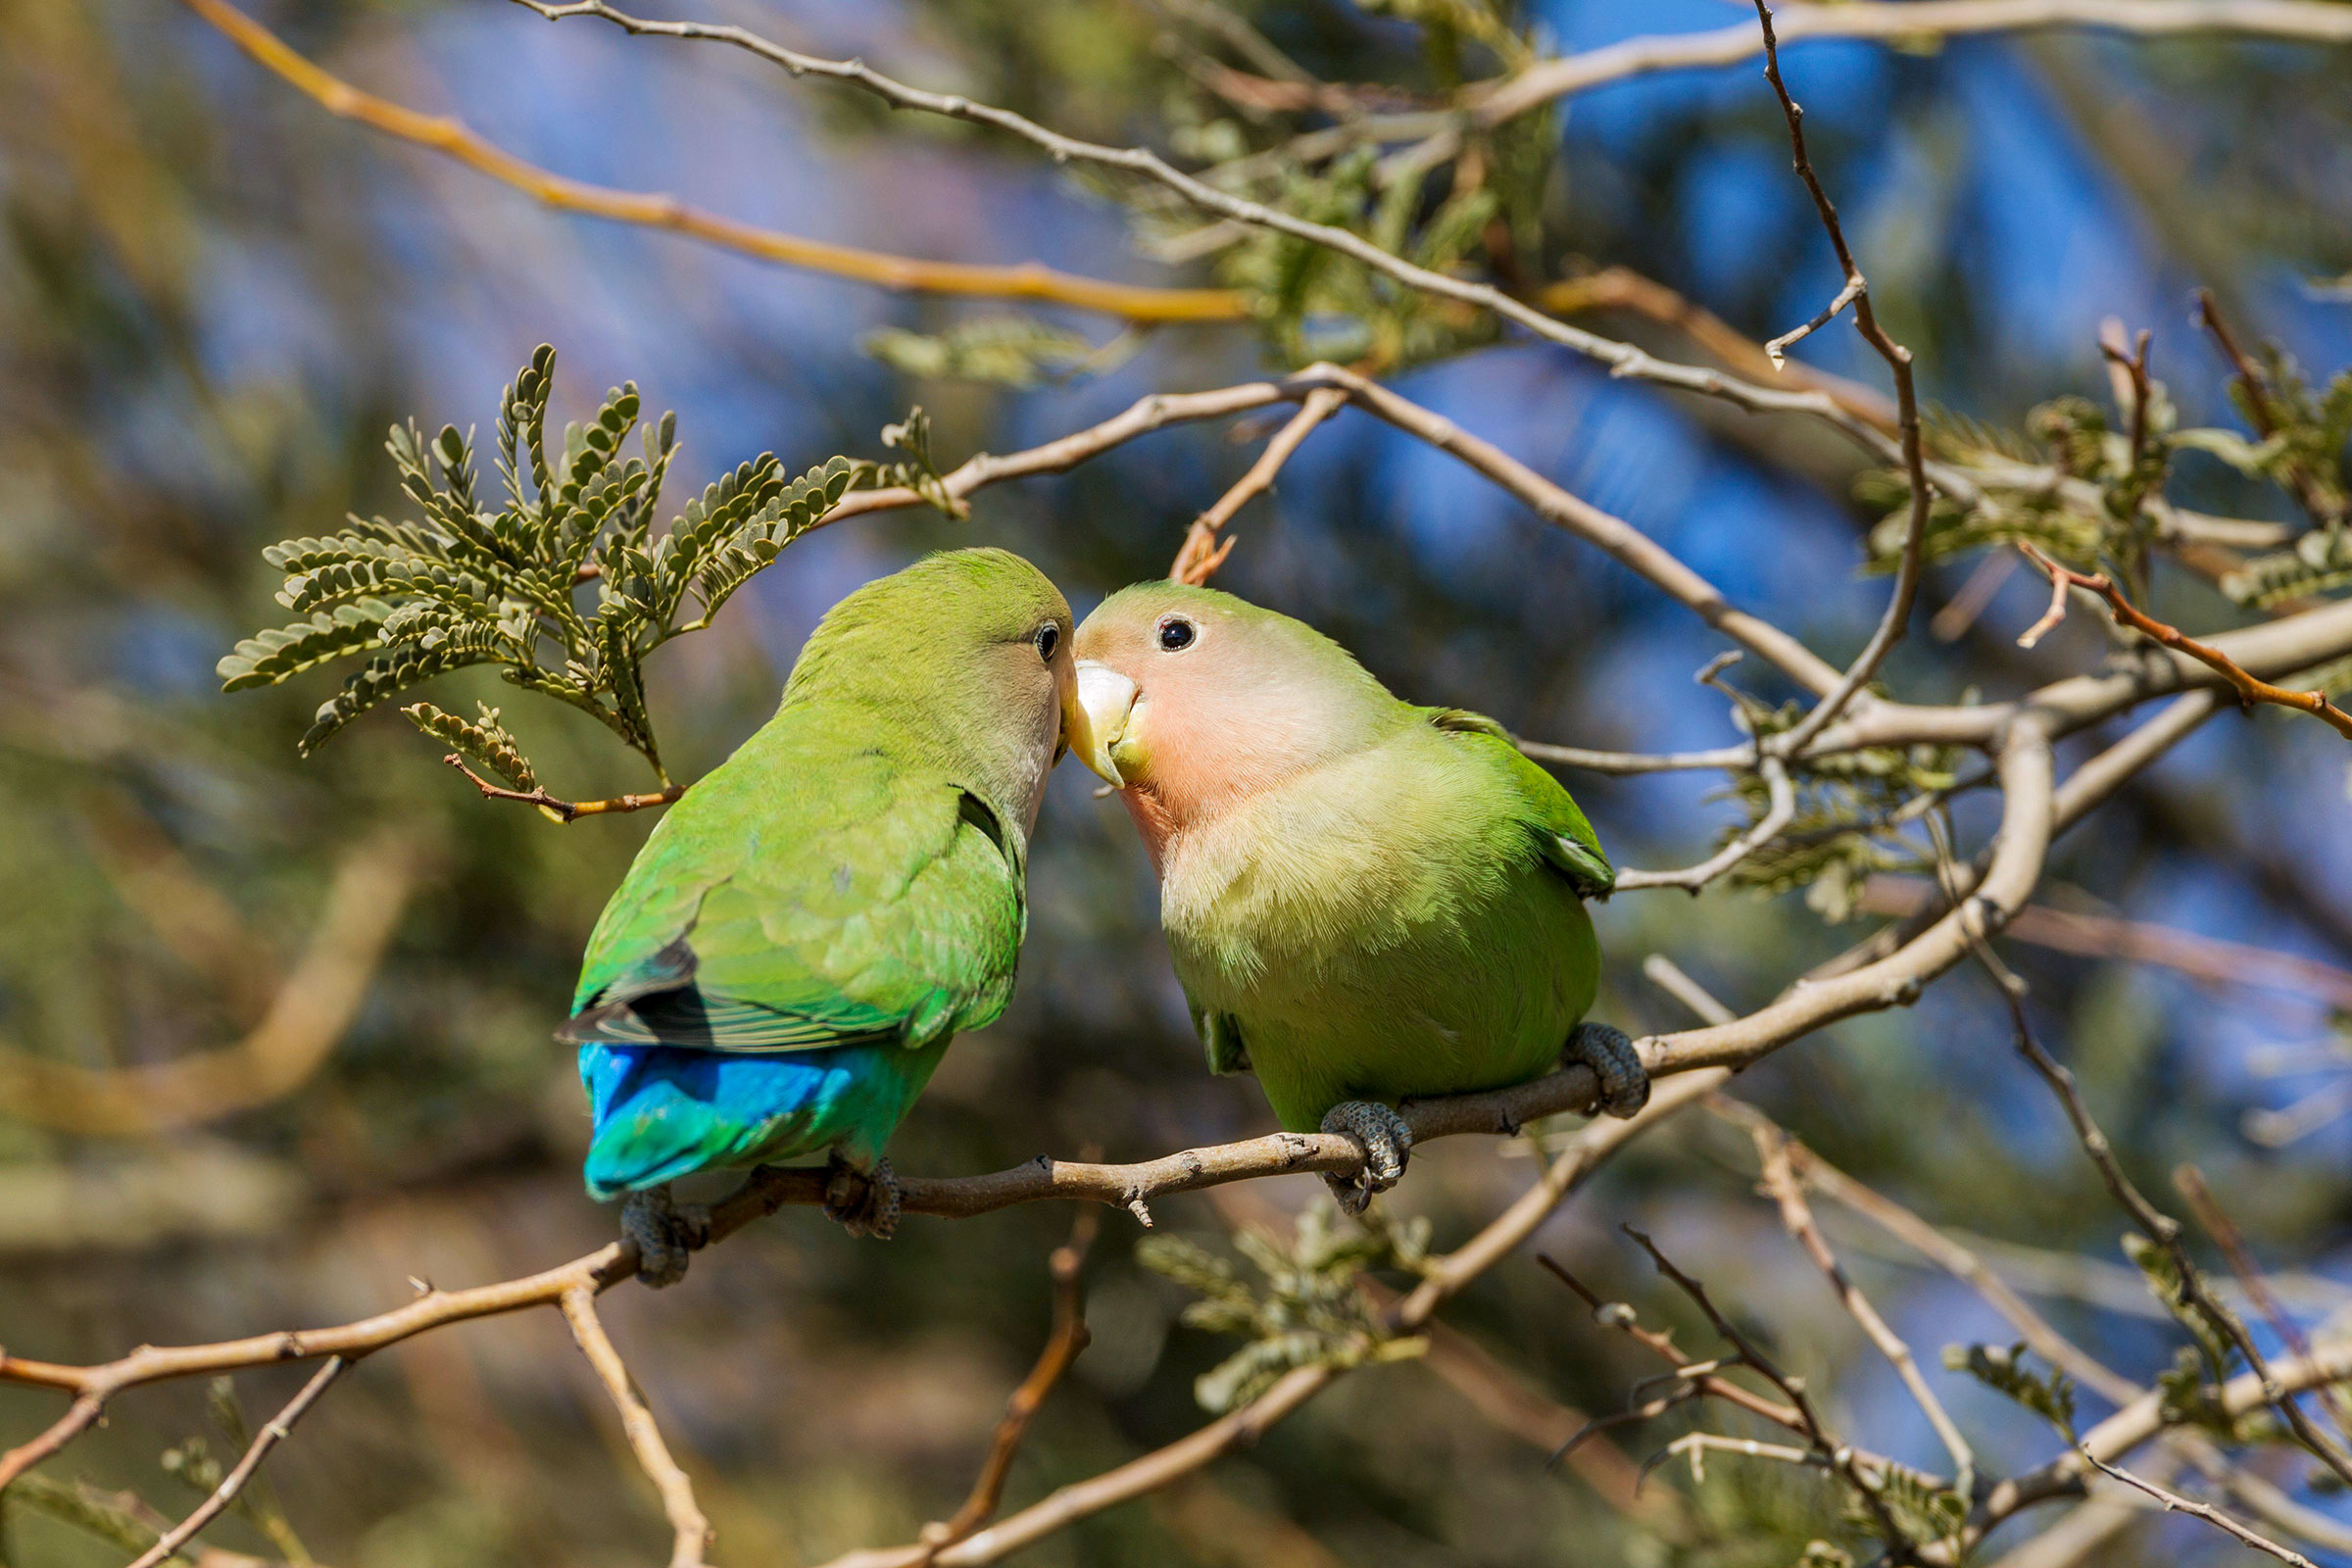 It's impossible to resist personifying these Rosy-faced Lovebirds as expert snugglers. Thomas Dressler/Alamy